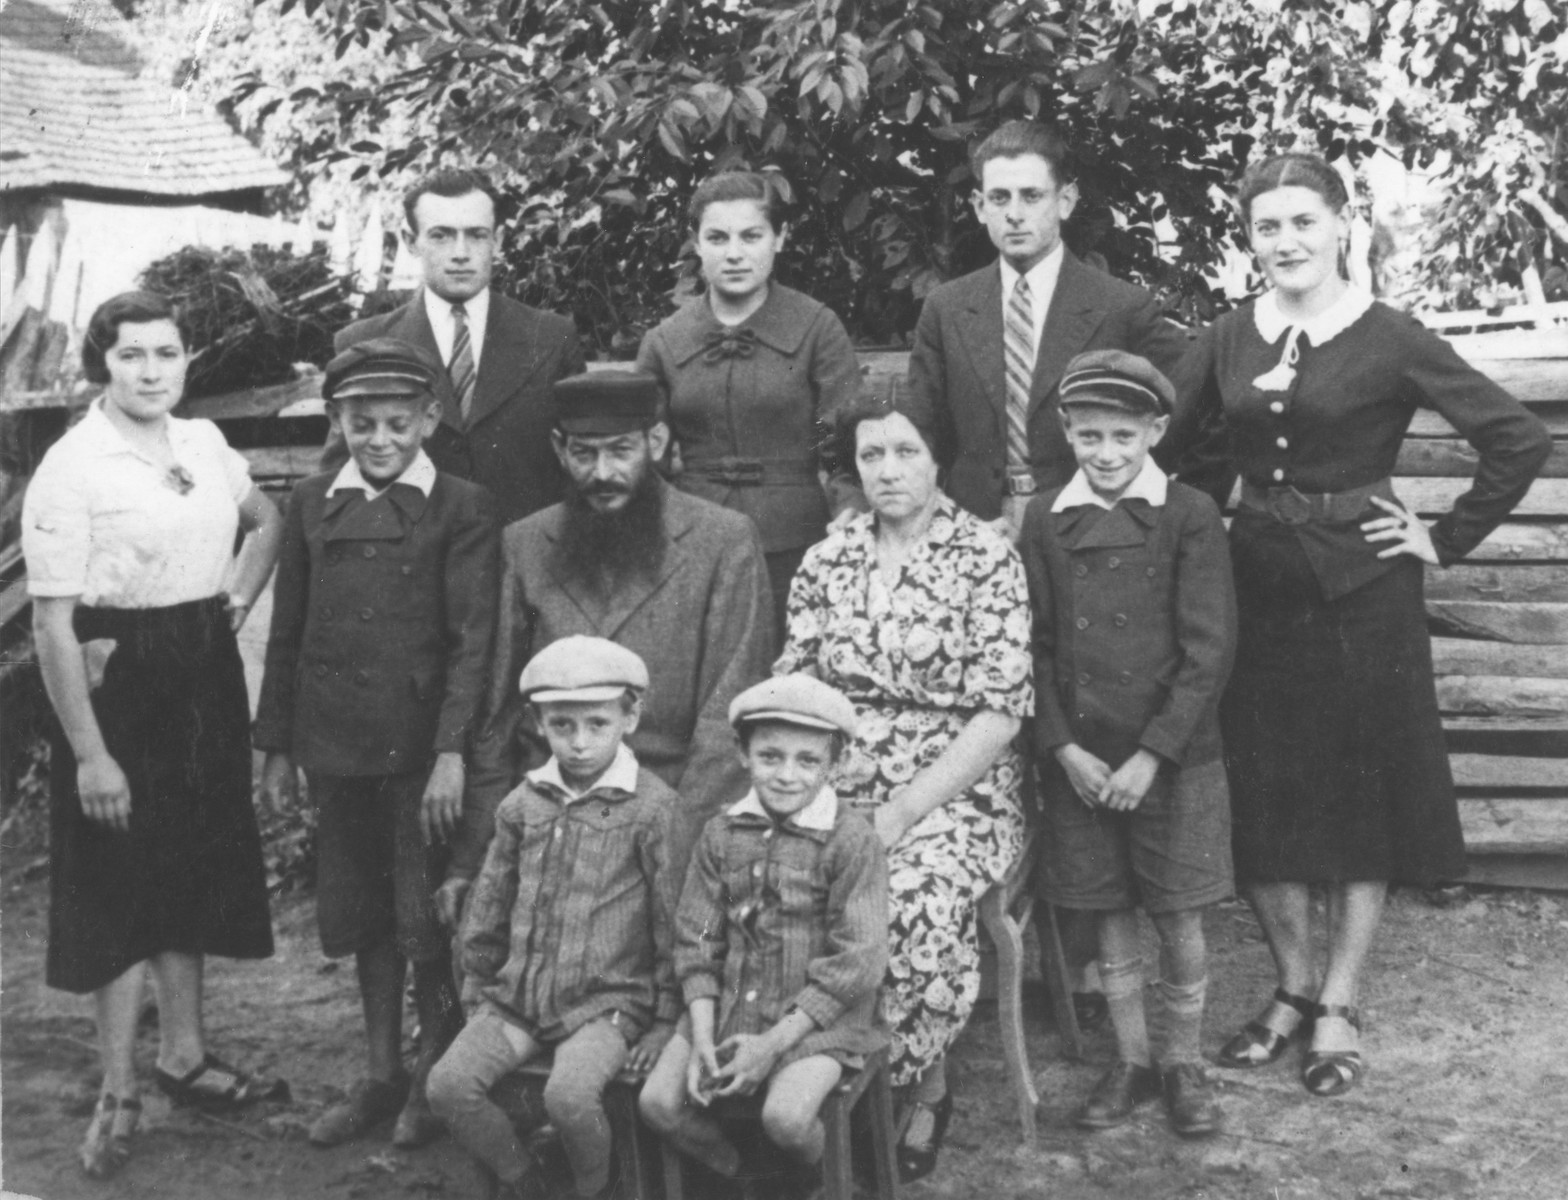 Group portrait of members of the Kaplan family in Sarnaki, Poland.